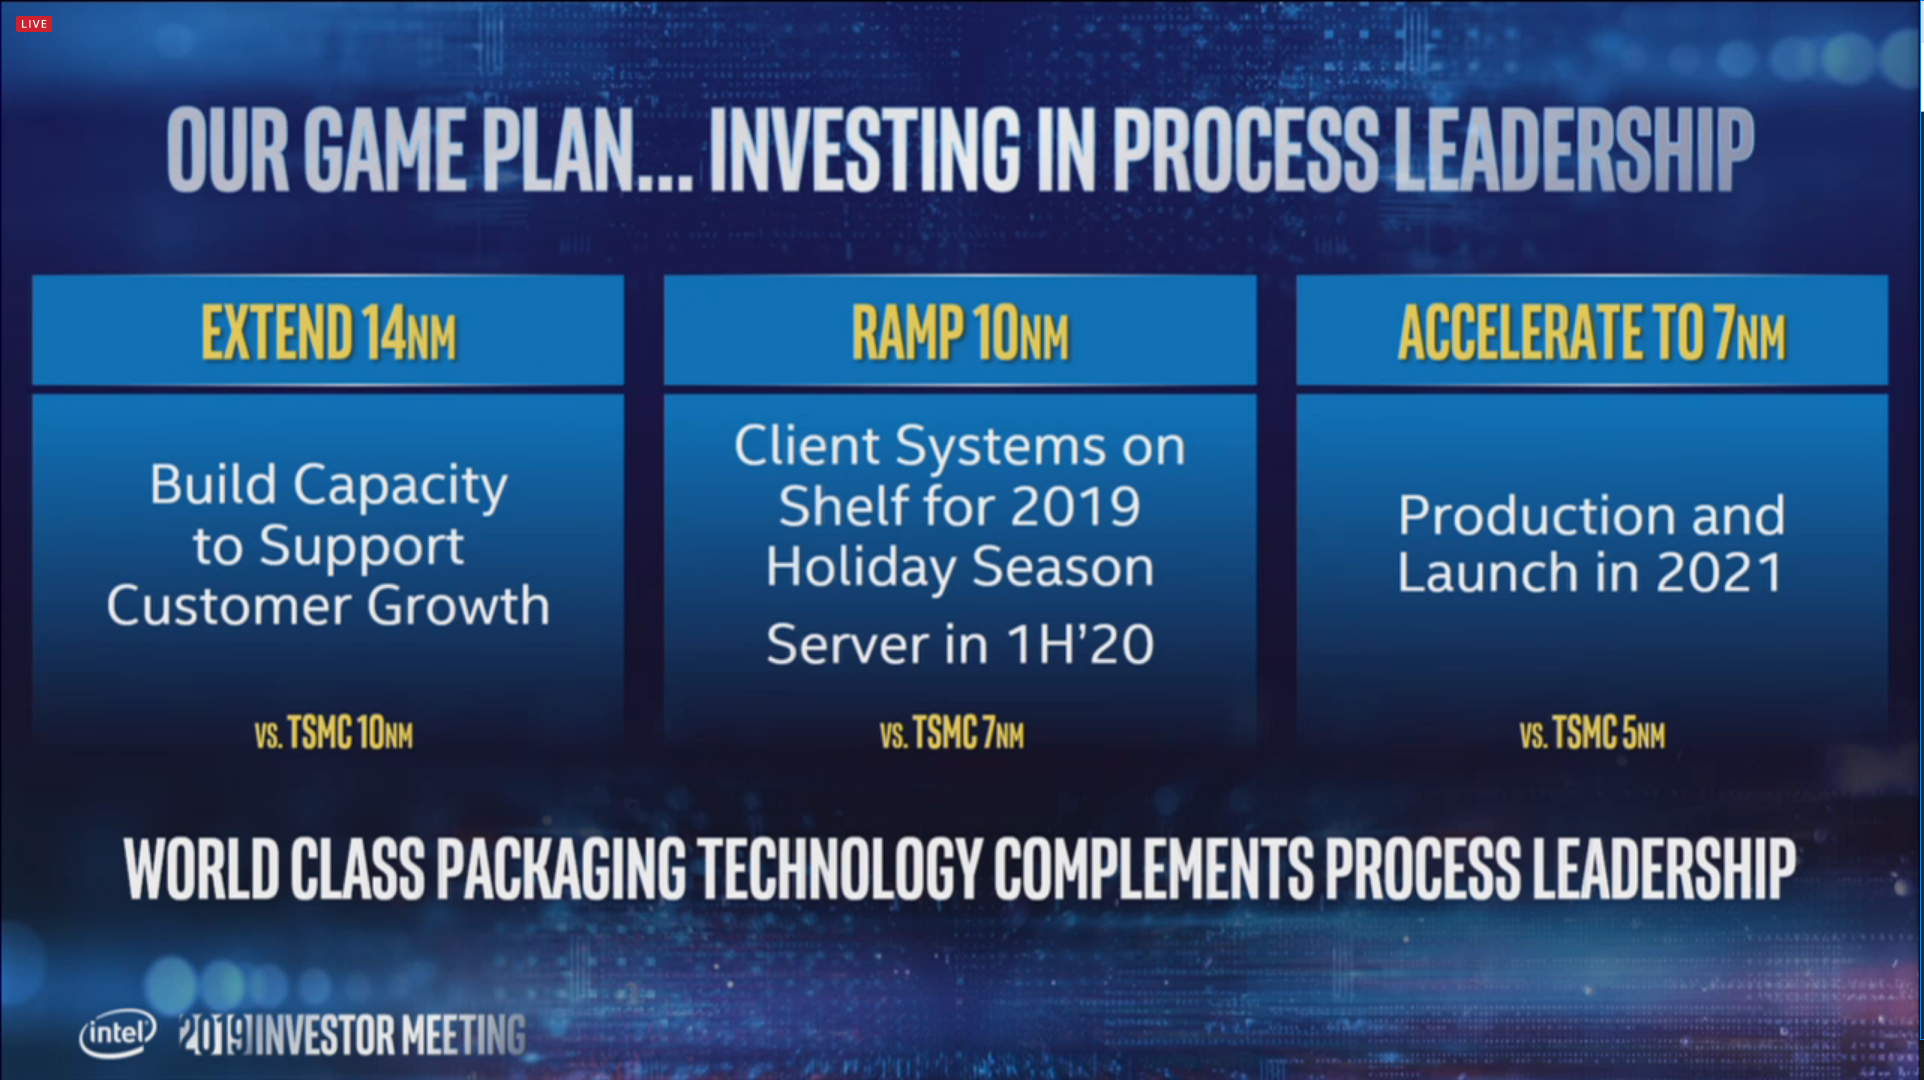 Intel Ice Lake 10mn chips ramping from June, 7nm coming 2021